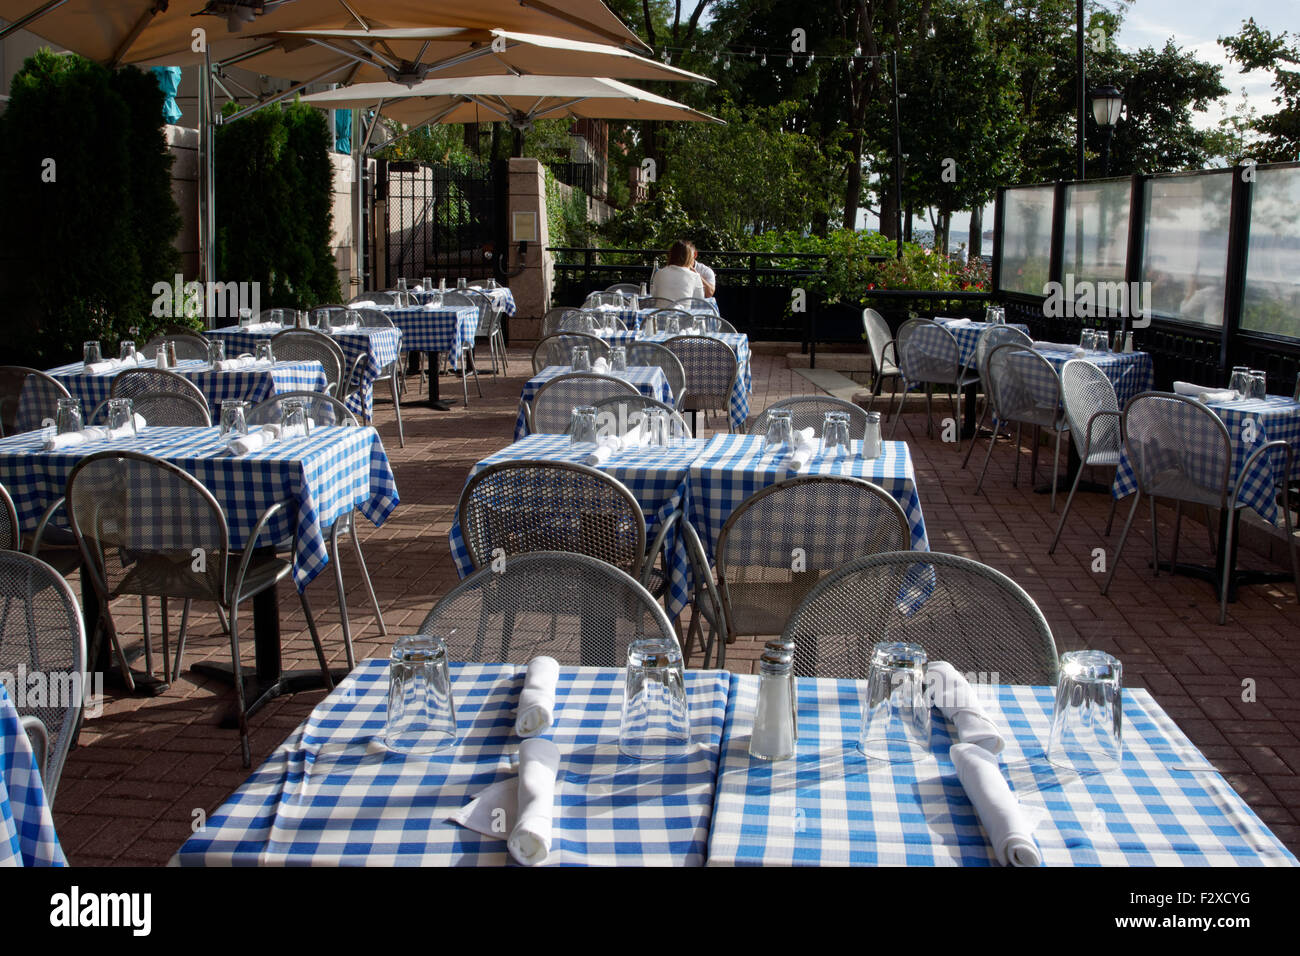 Outdoor dining on the southern terrace at Merchants River House, a restaurant in Battery Park City, Manhattan. - Stock Image